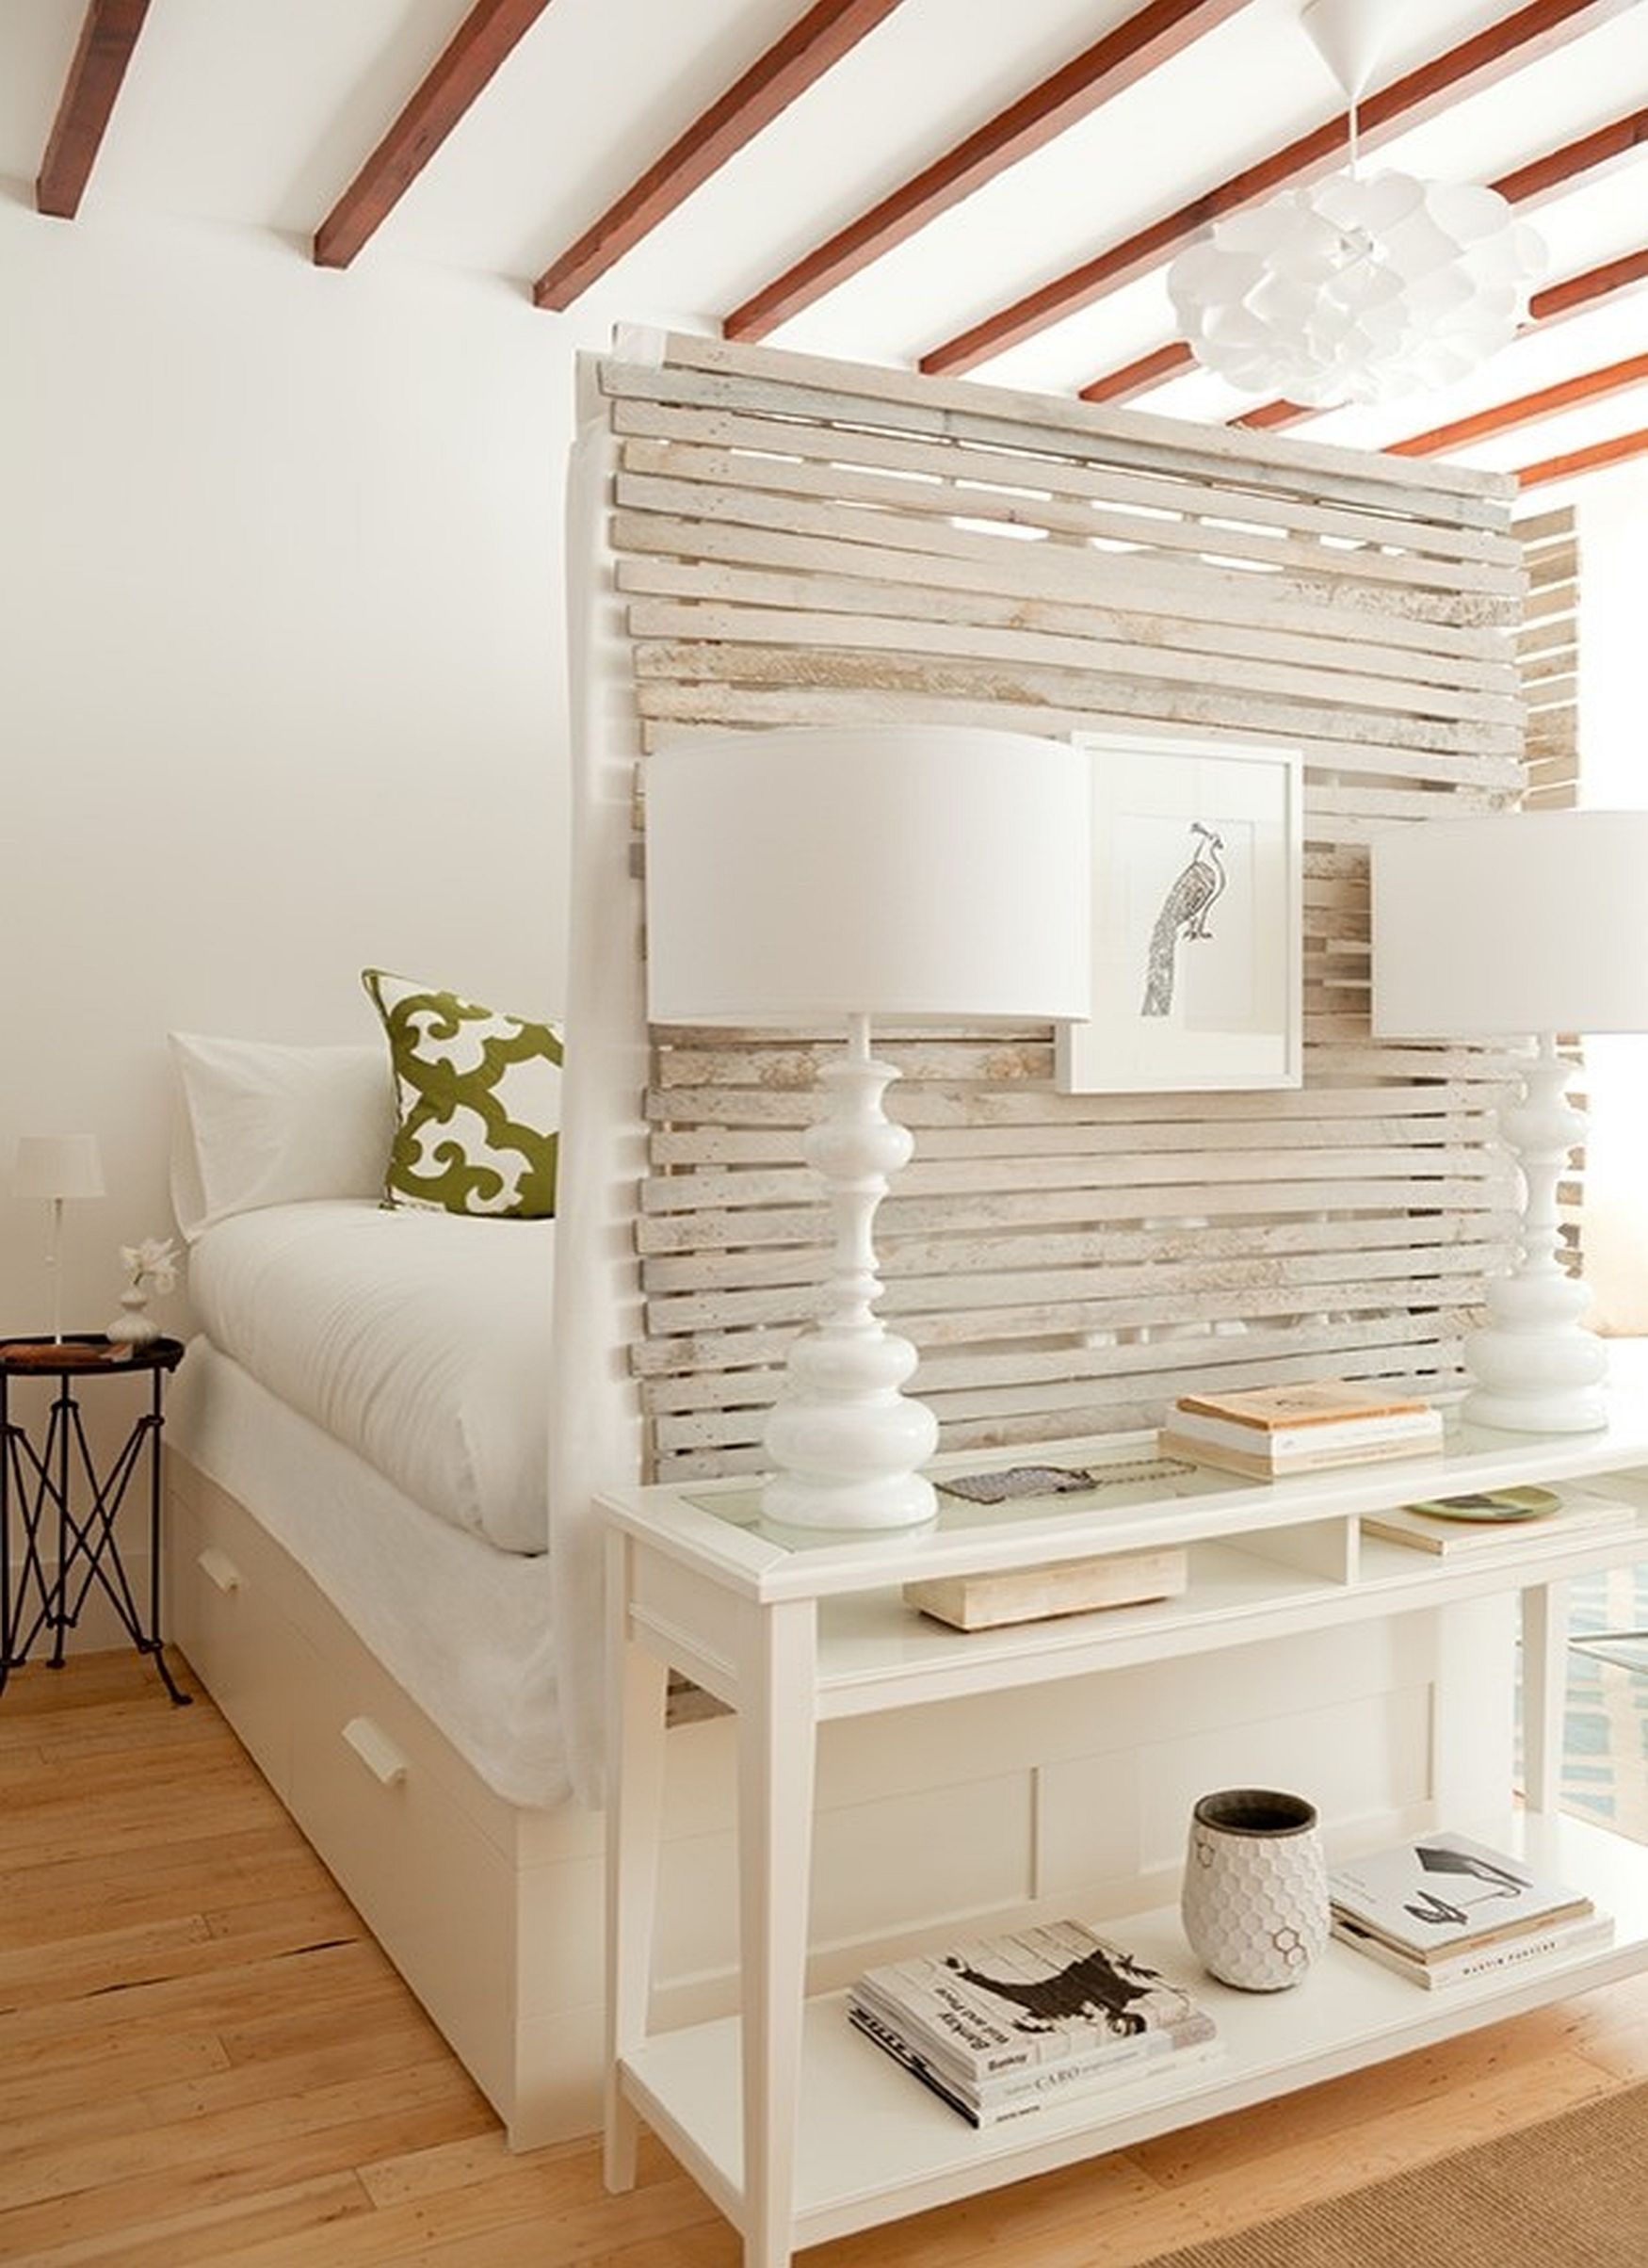 creative room dividers for the spacesavvy and trendy bedroom in